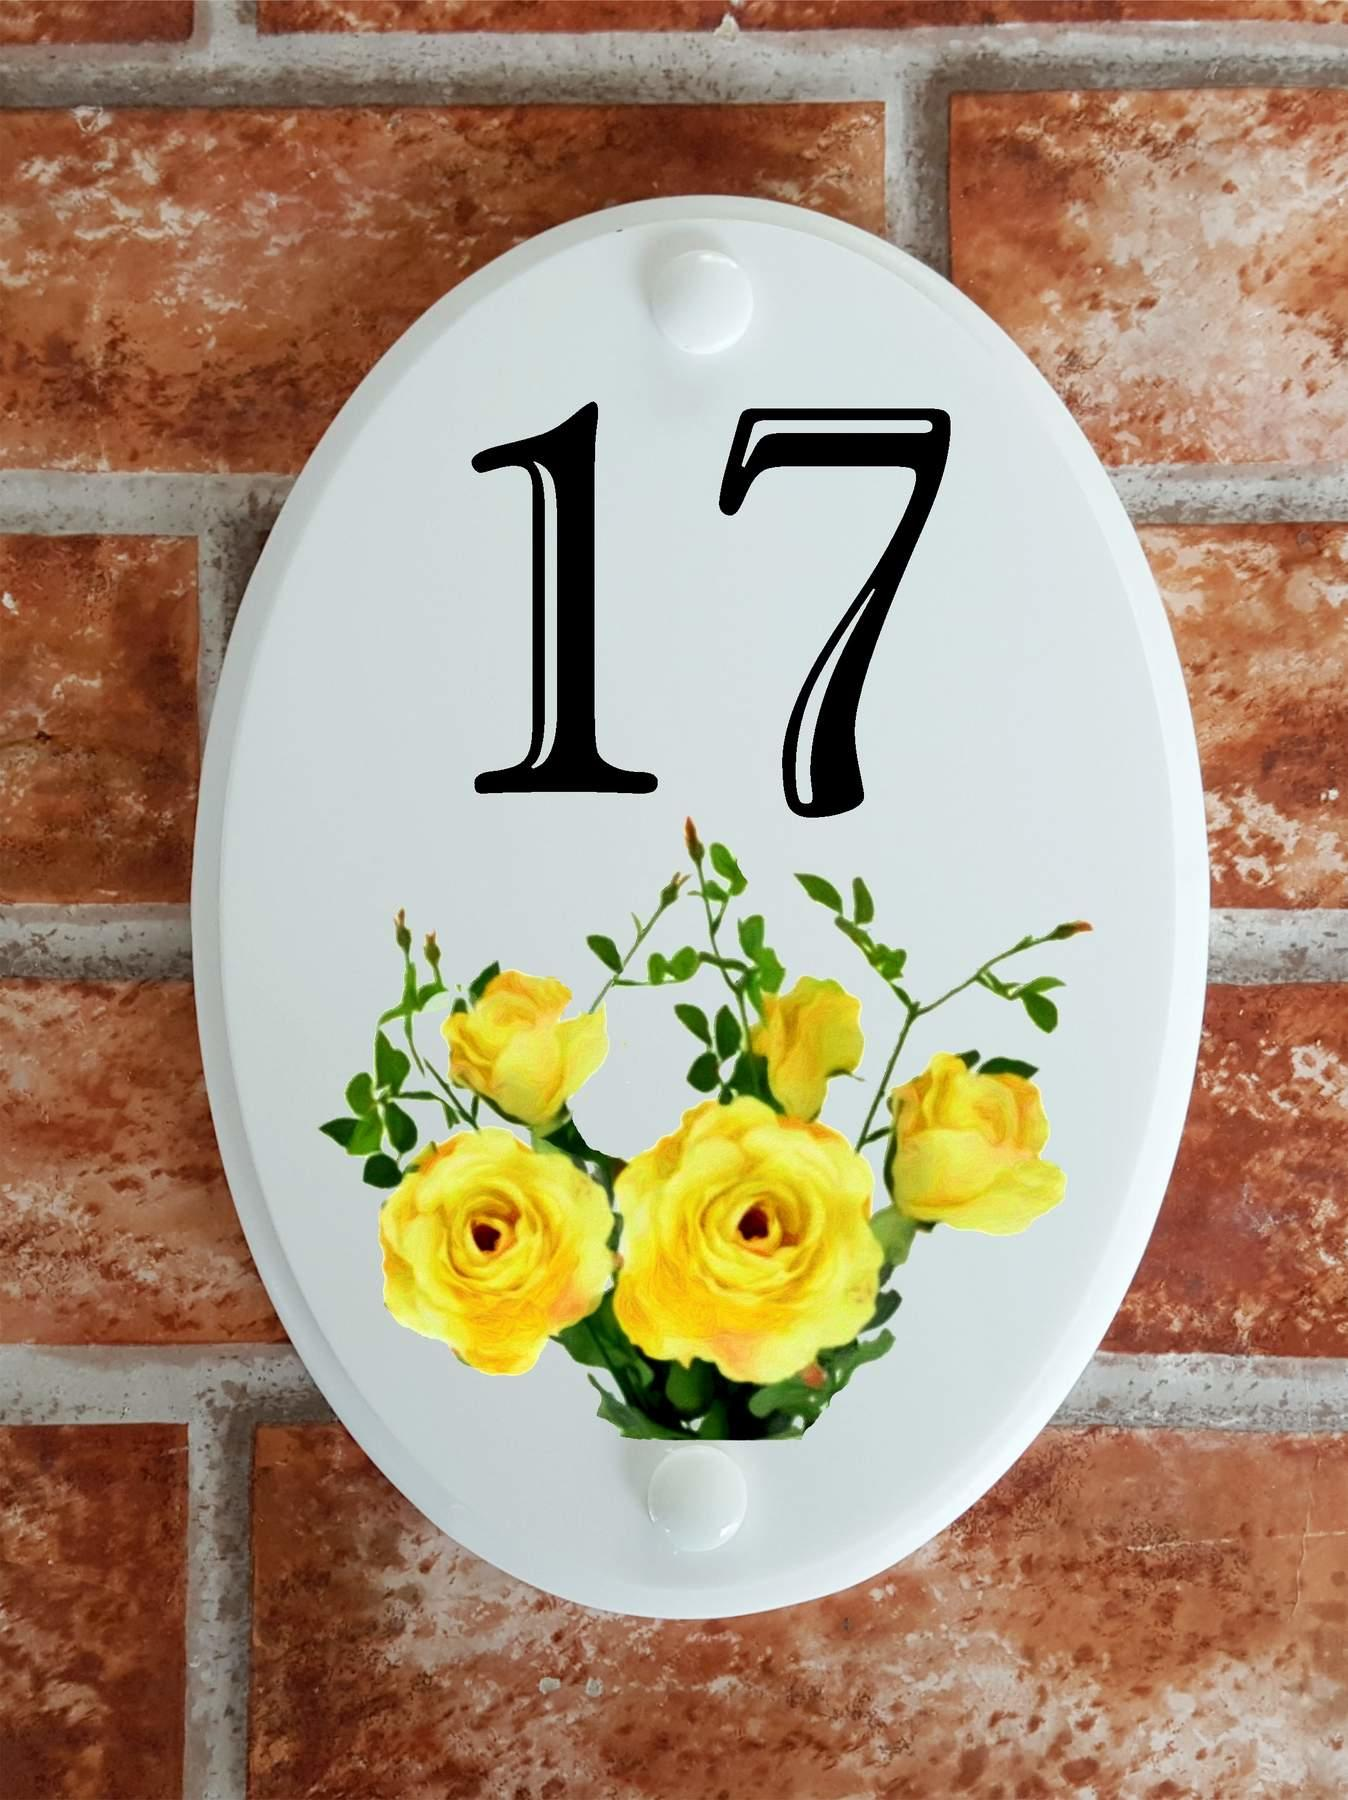 house number plate with yellow roses